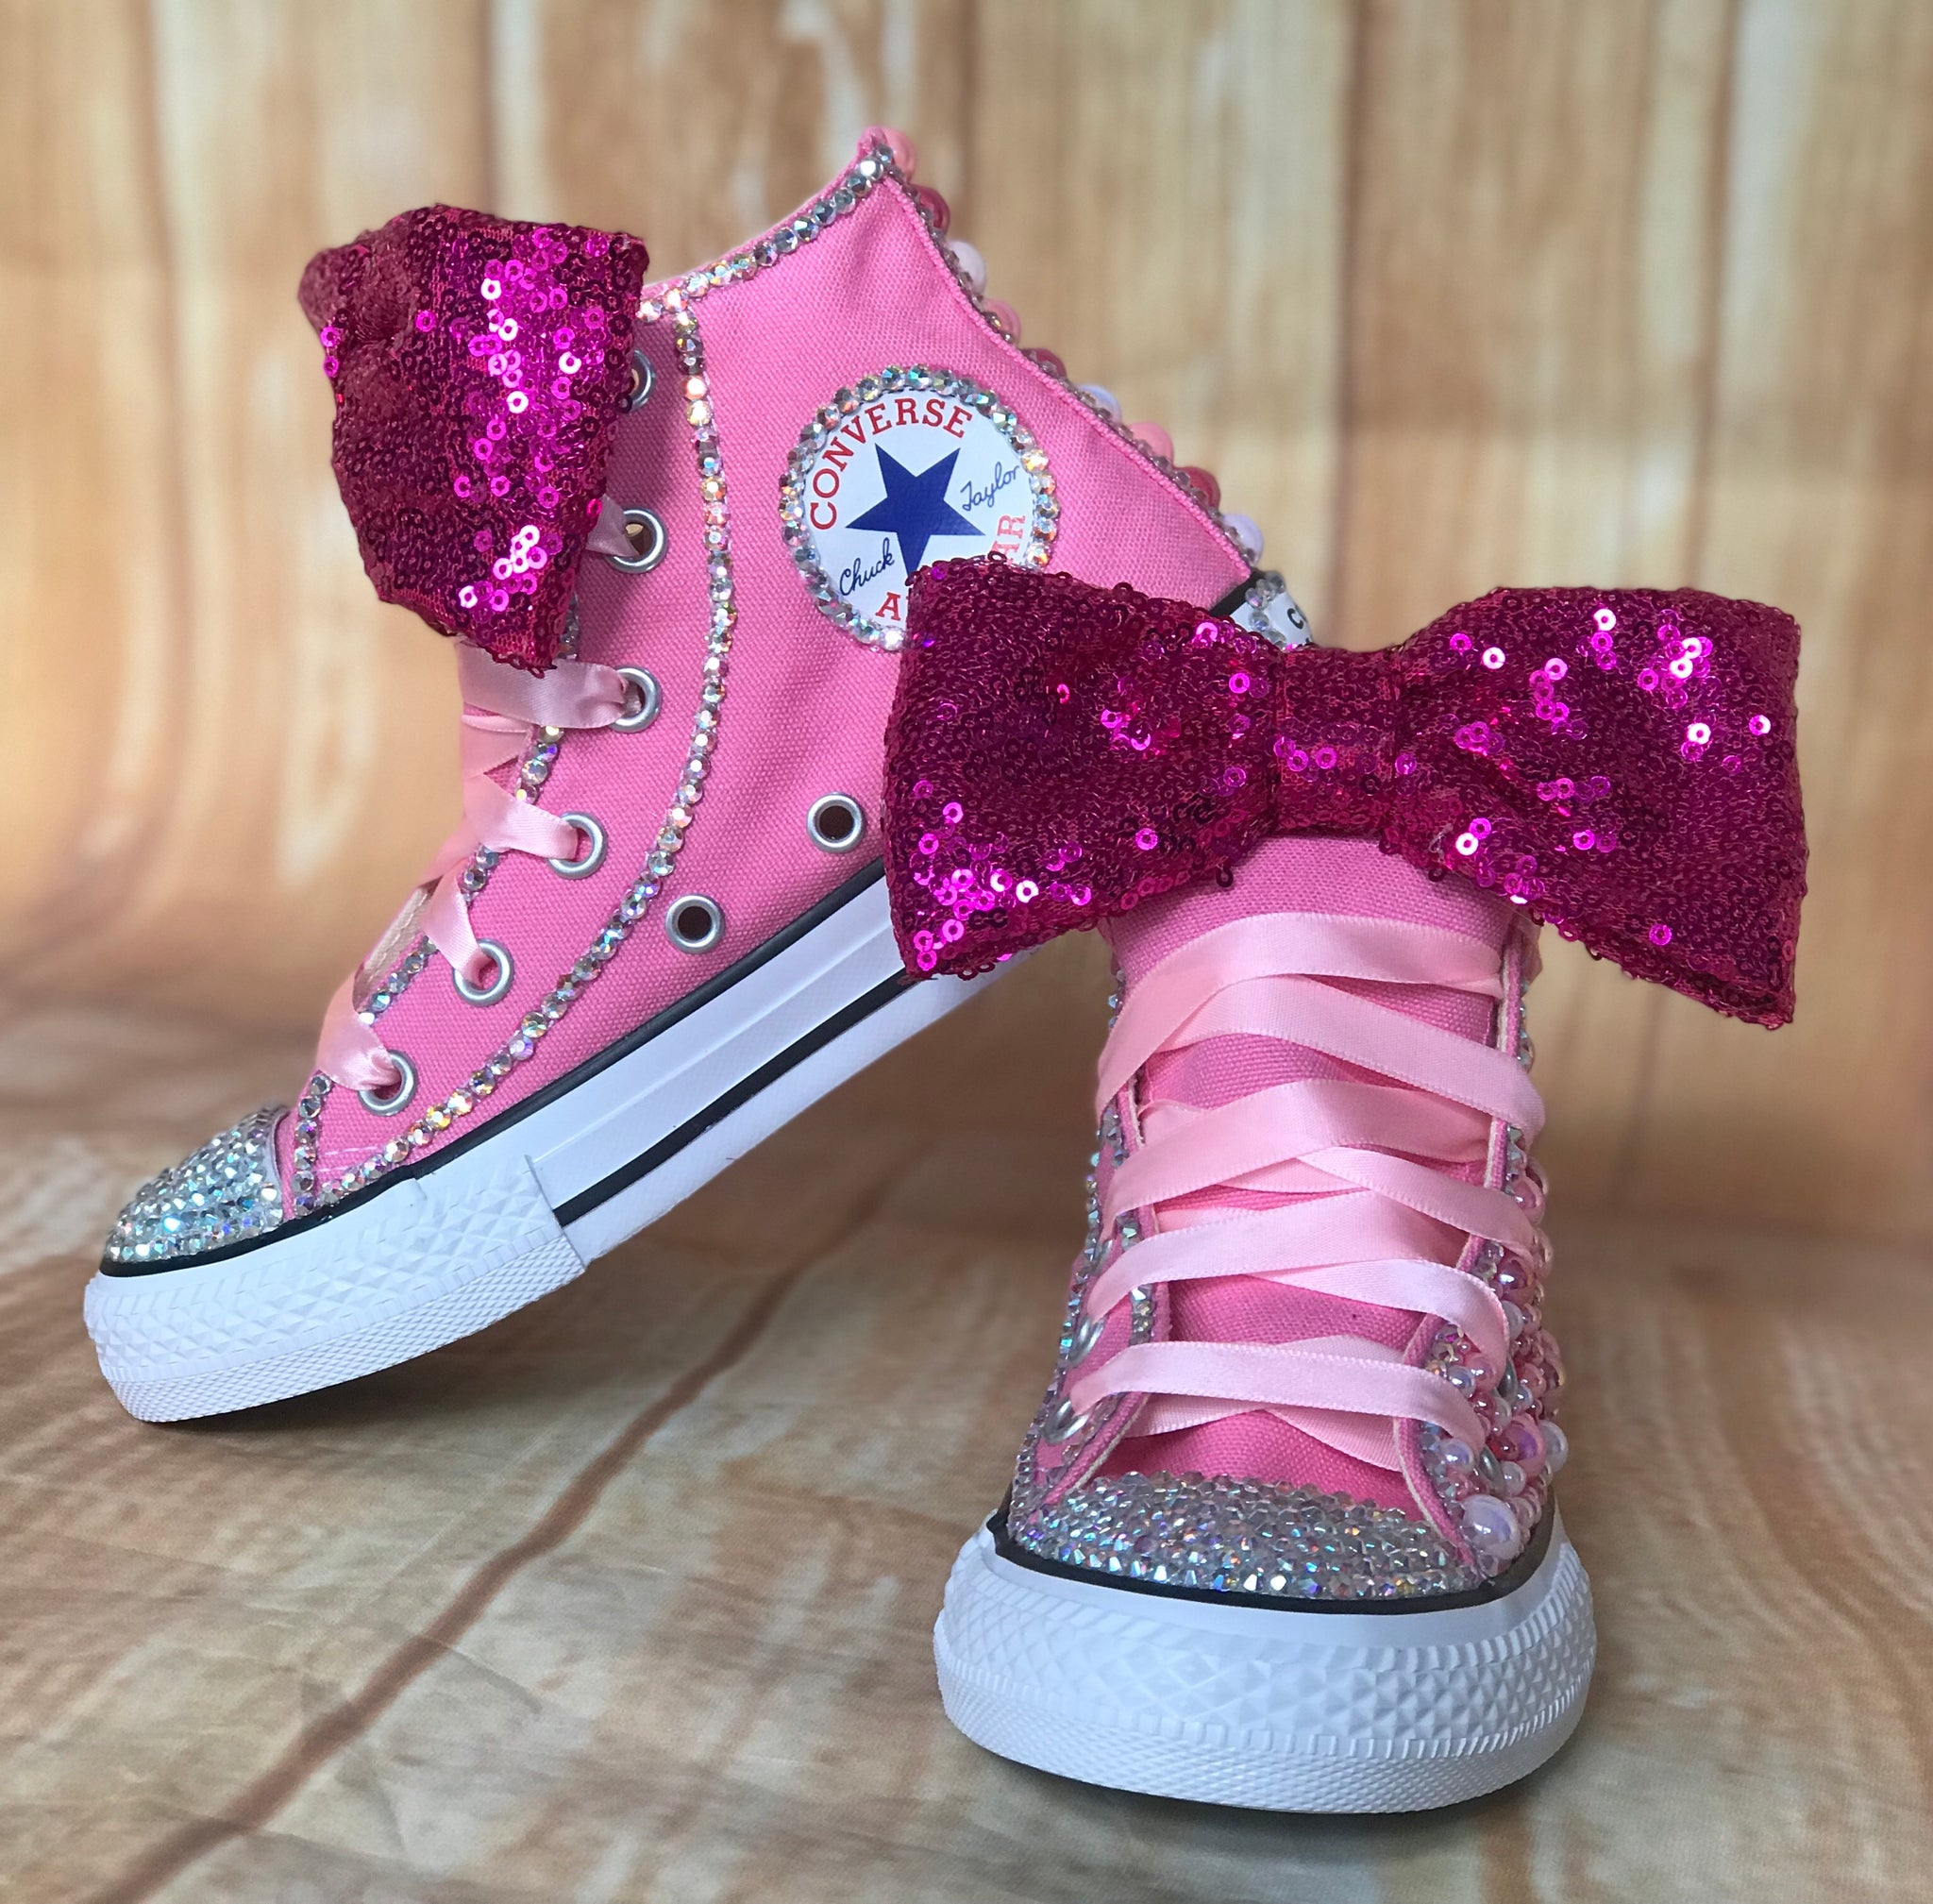 LOL Surprise Doll Fancy Converse Sneakers, Little Kids Shoe Size 10 2